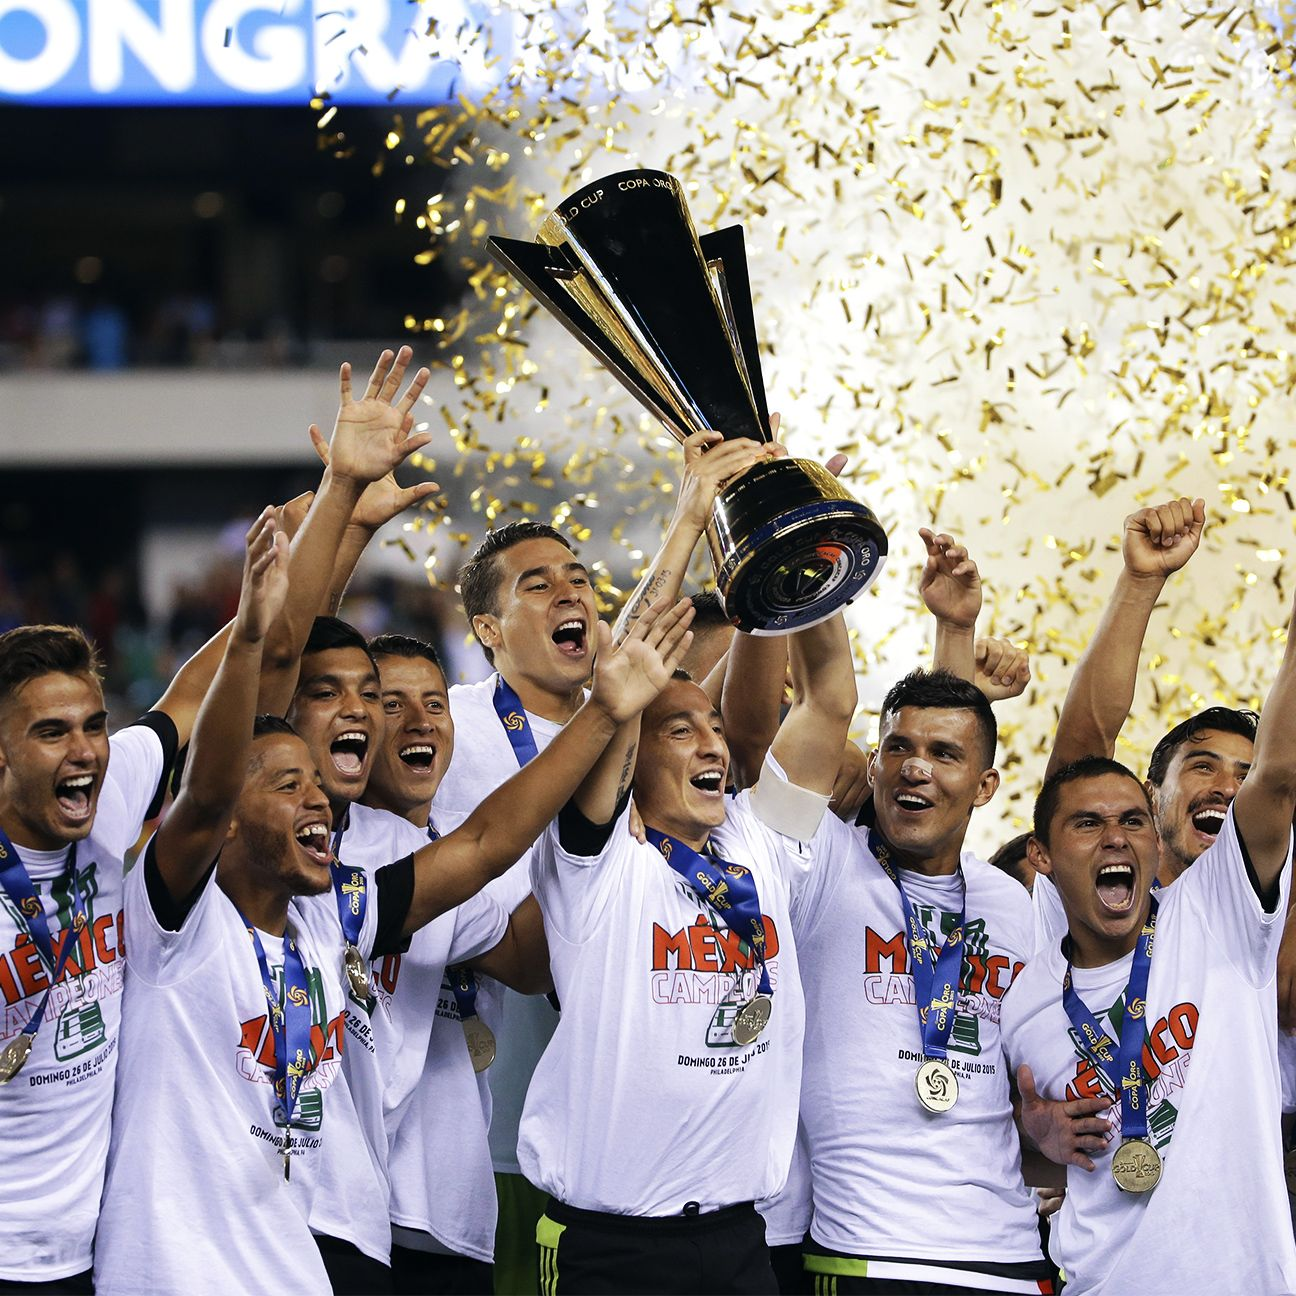 Mexico are coming off a successful summer in which they claimed the 2015 Gold Cup.